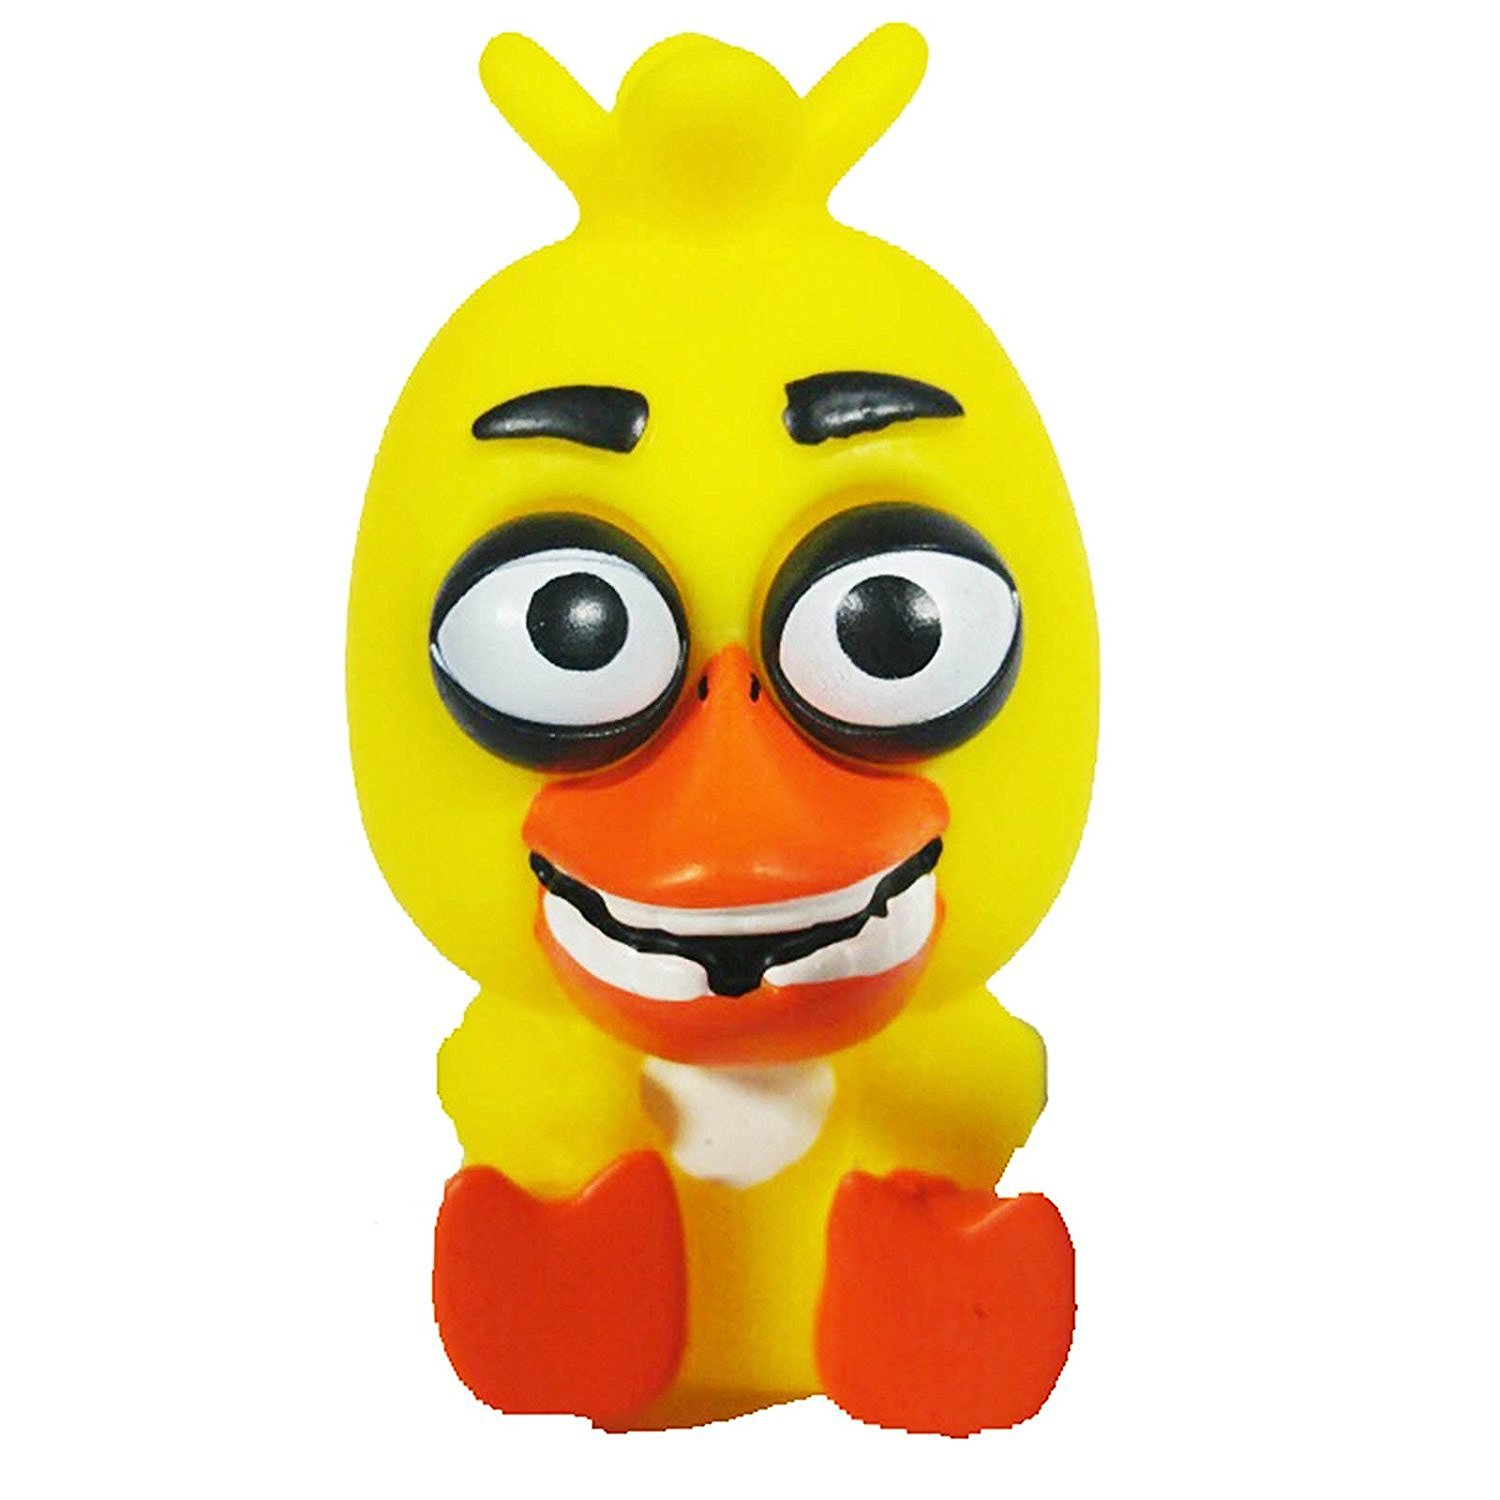 Funko Five Nights at Freddy's Chica Squeezable Keychain